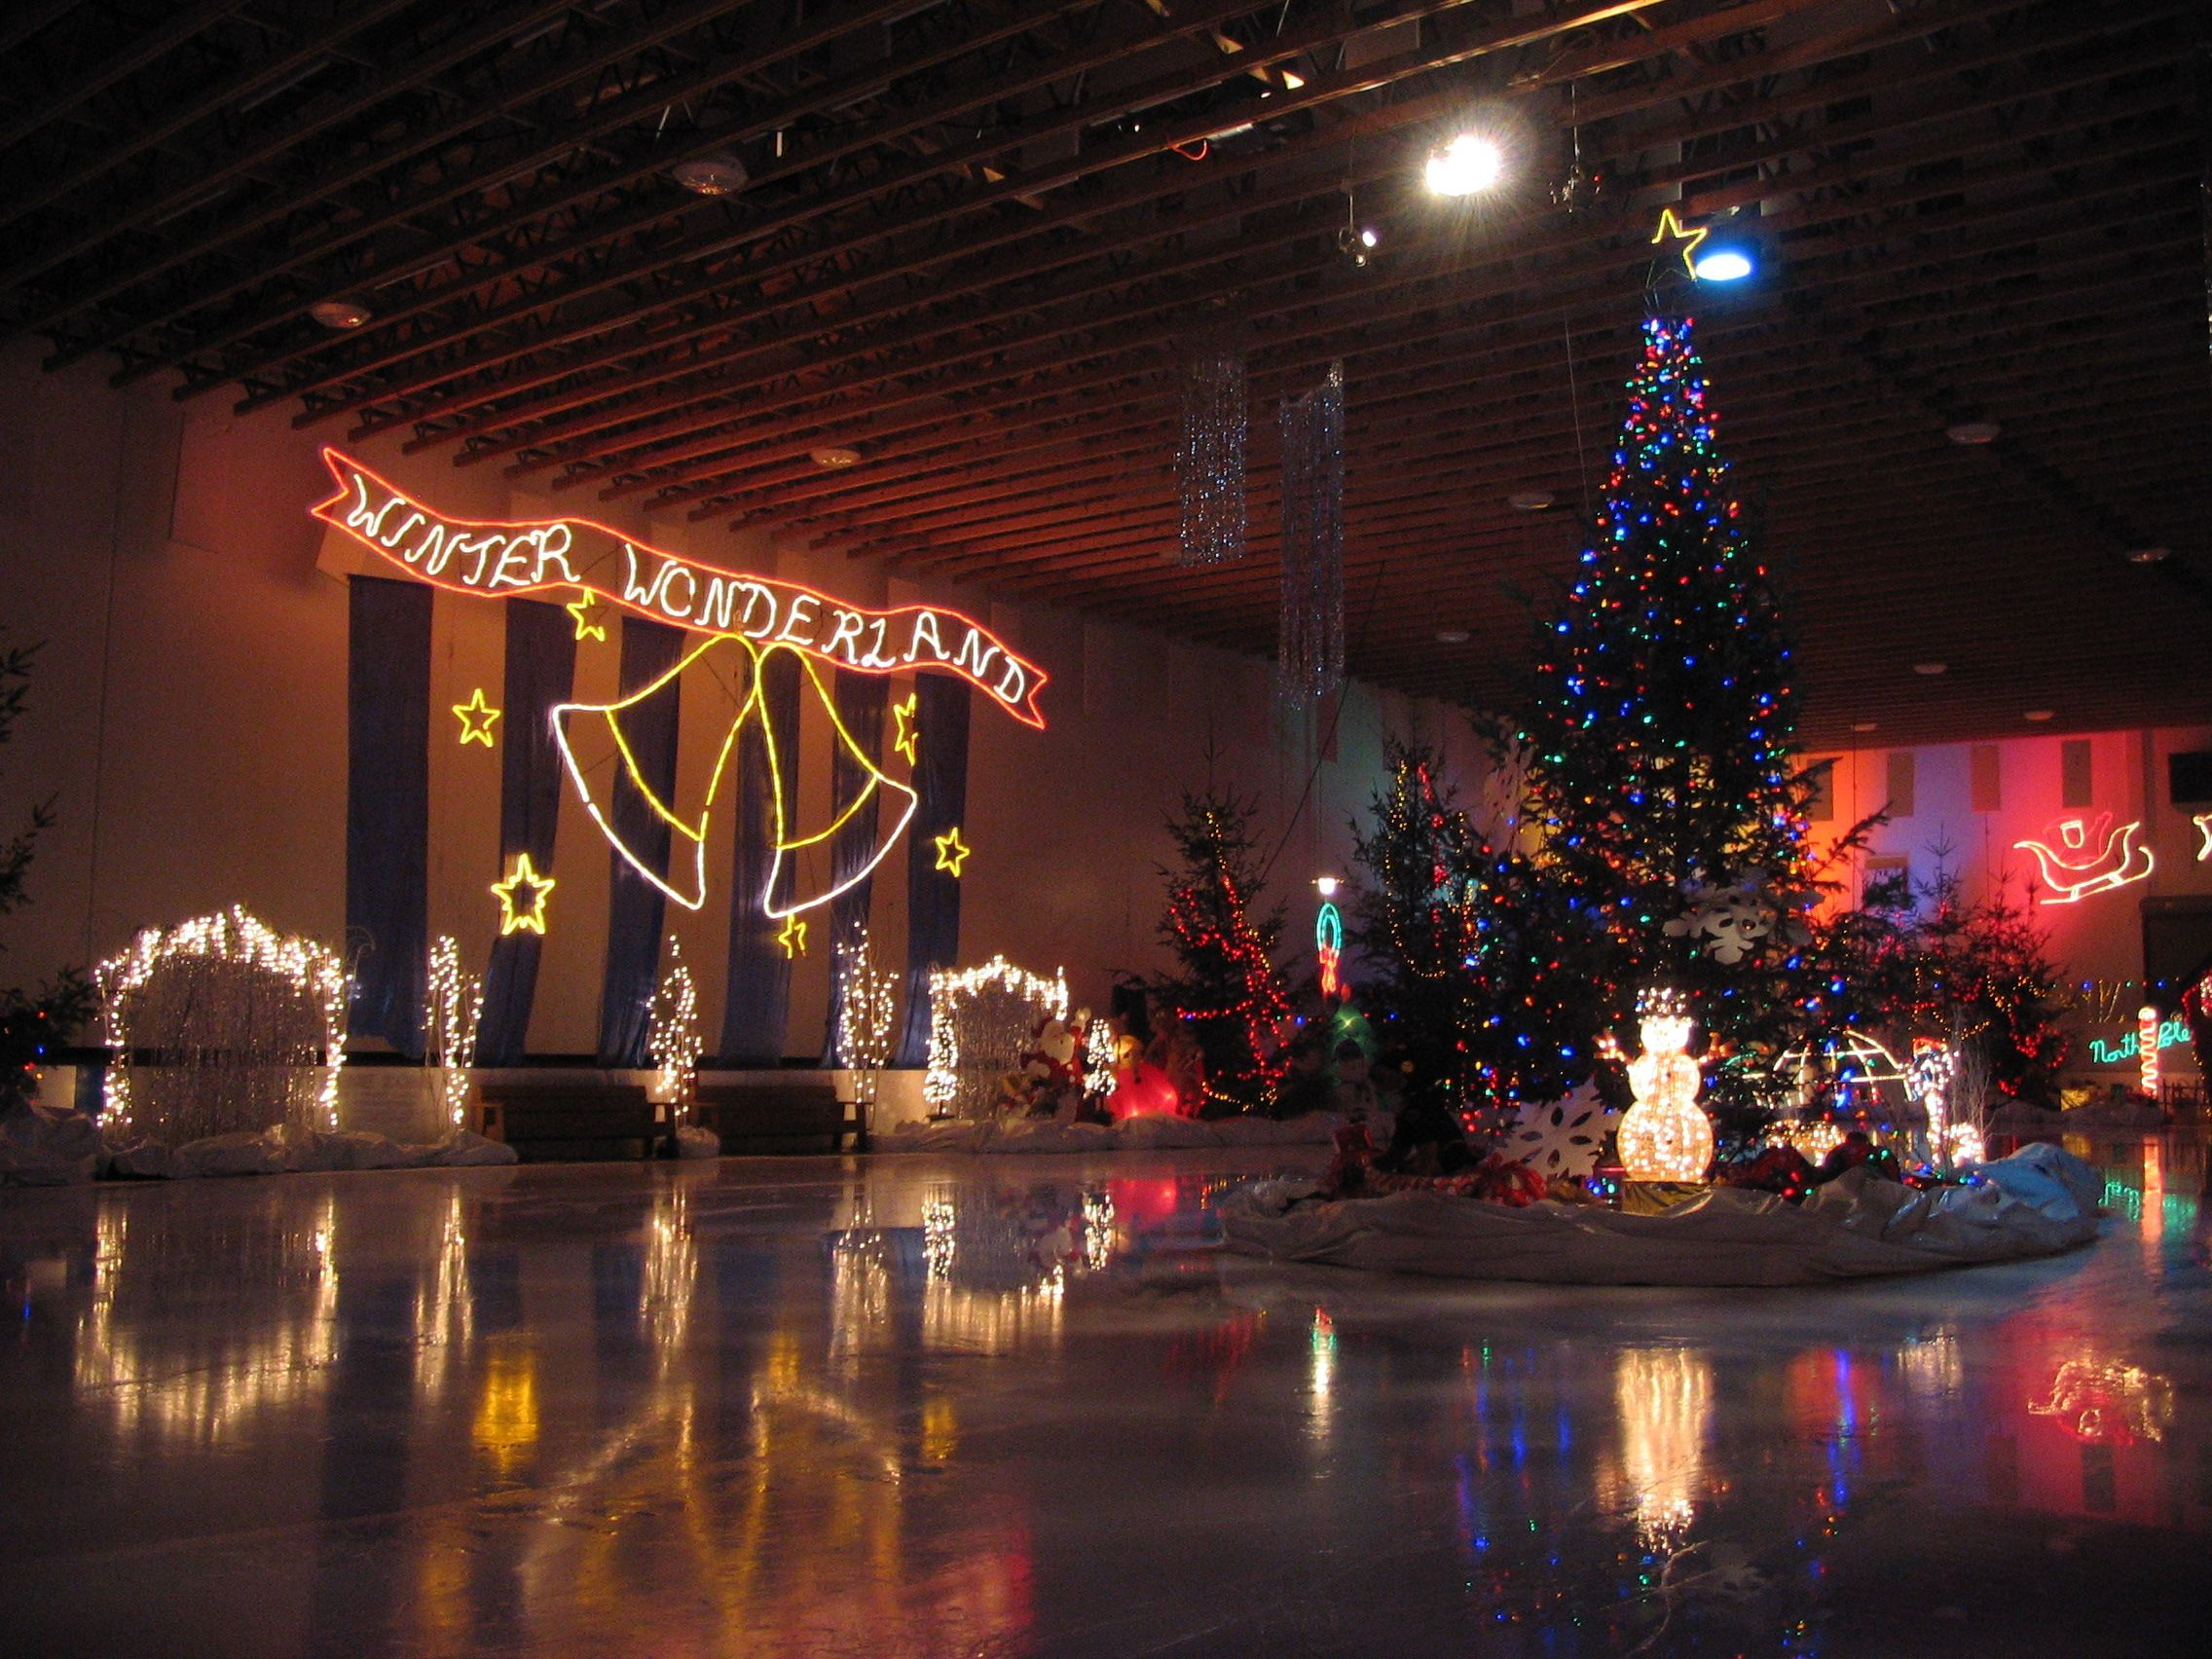 WINTER WONDERLAND - Yearly Community Skate Session - Donated by RE/MAX Mid-Island Realty...